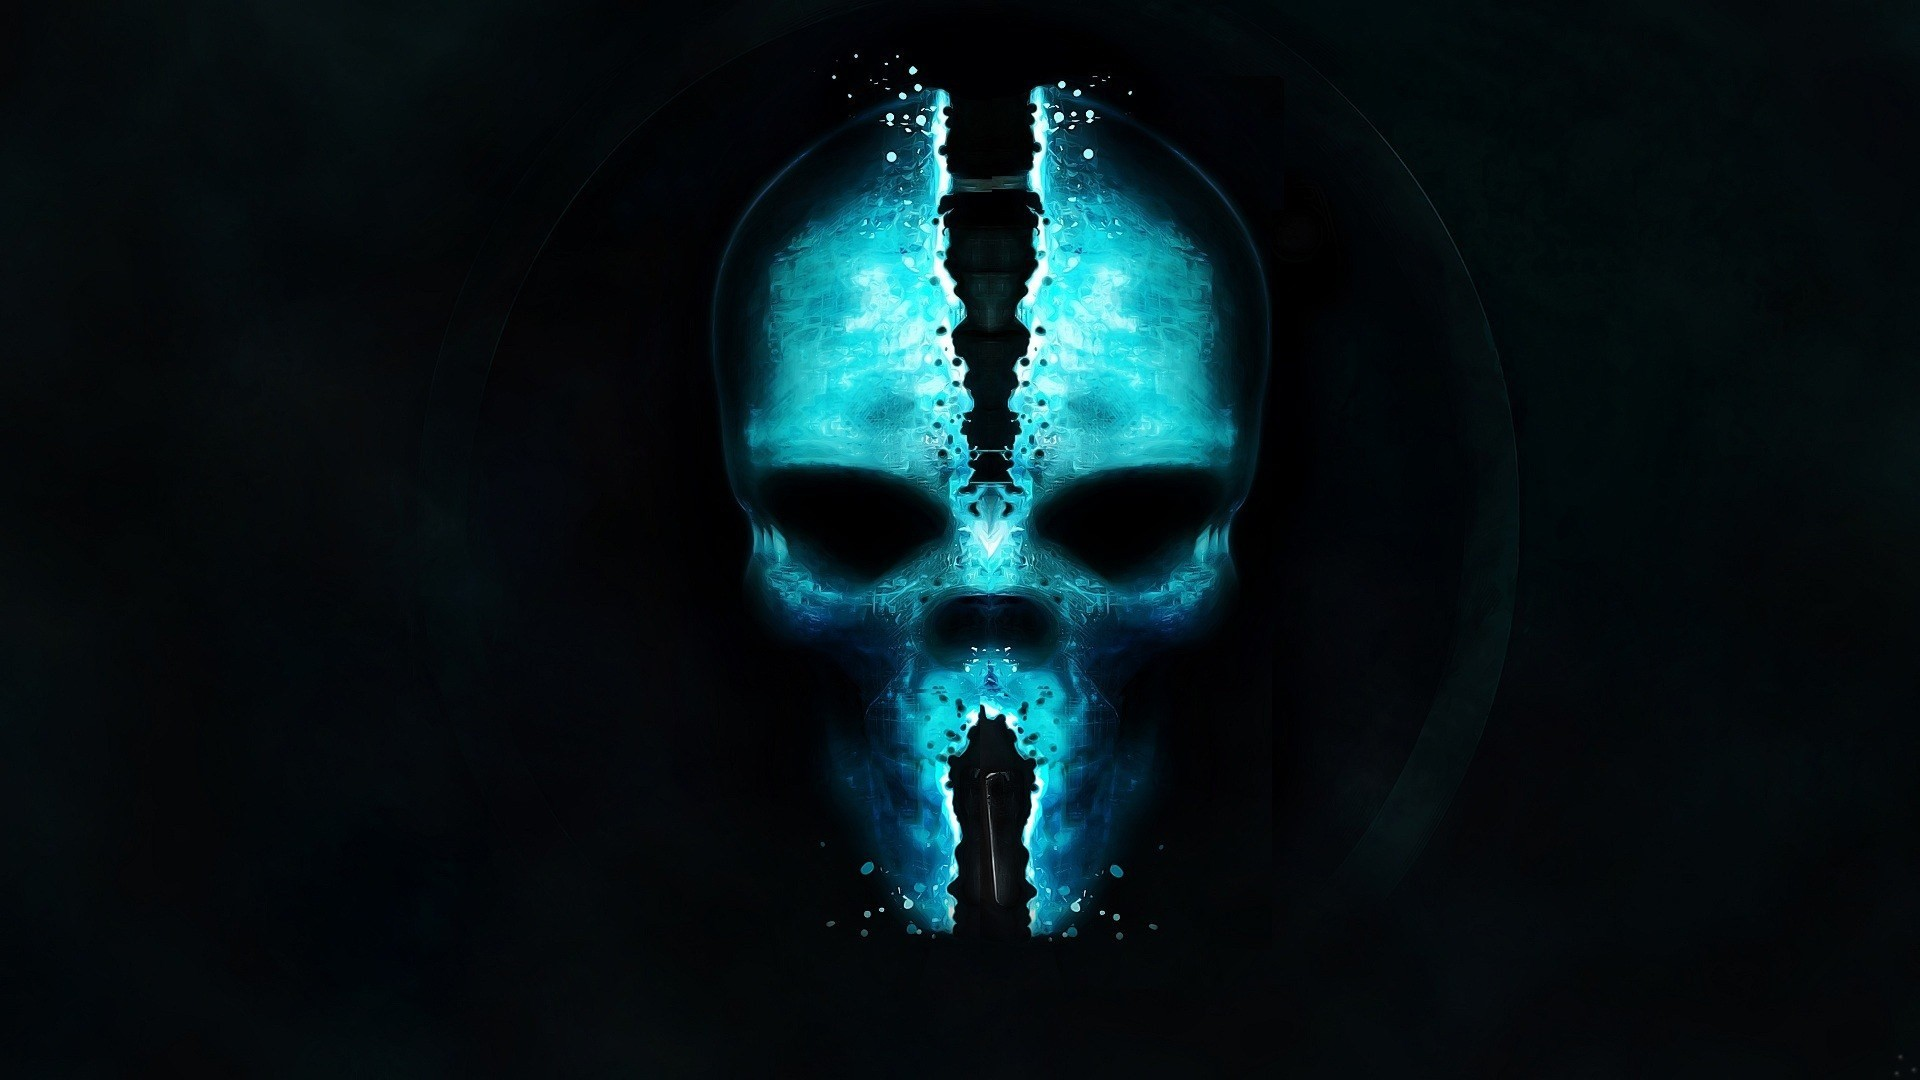 Skull wallpapers for desktop